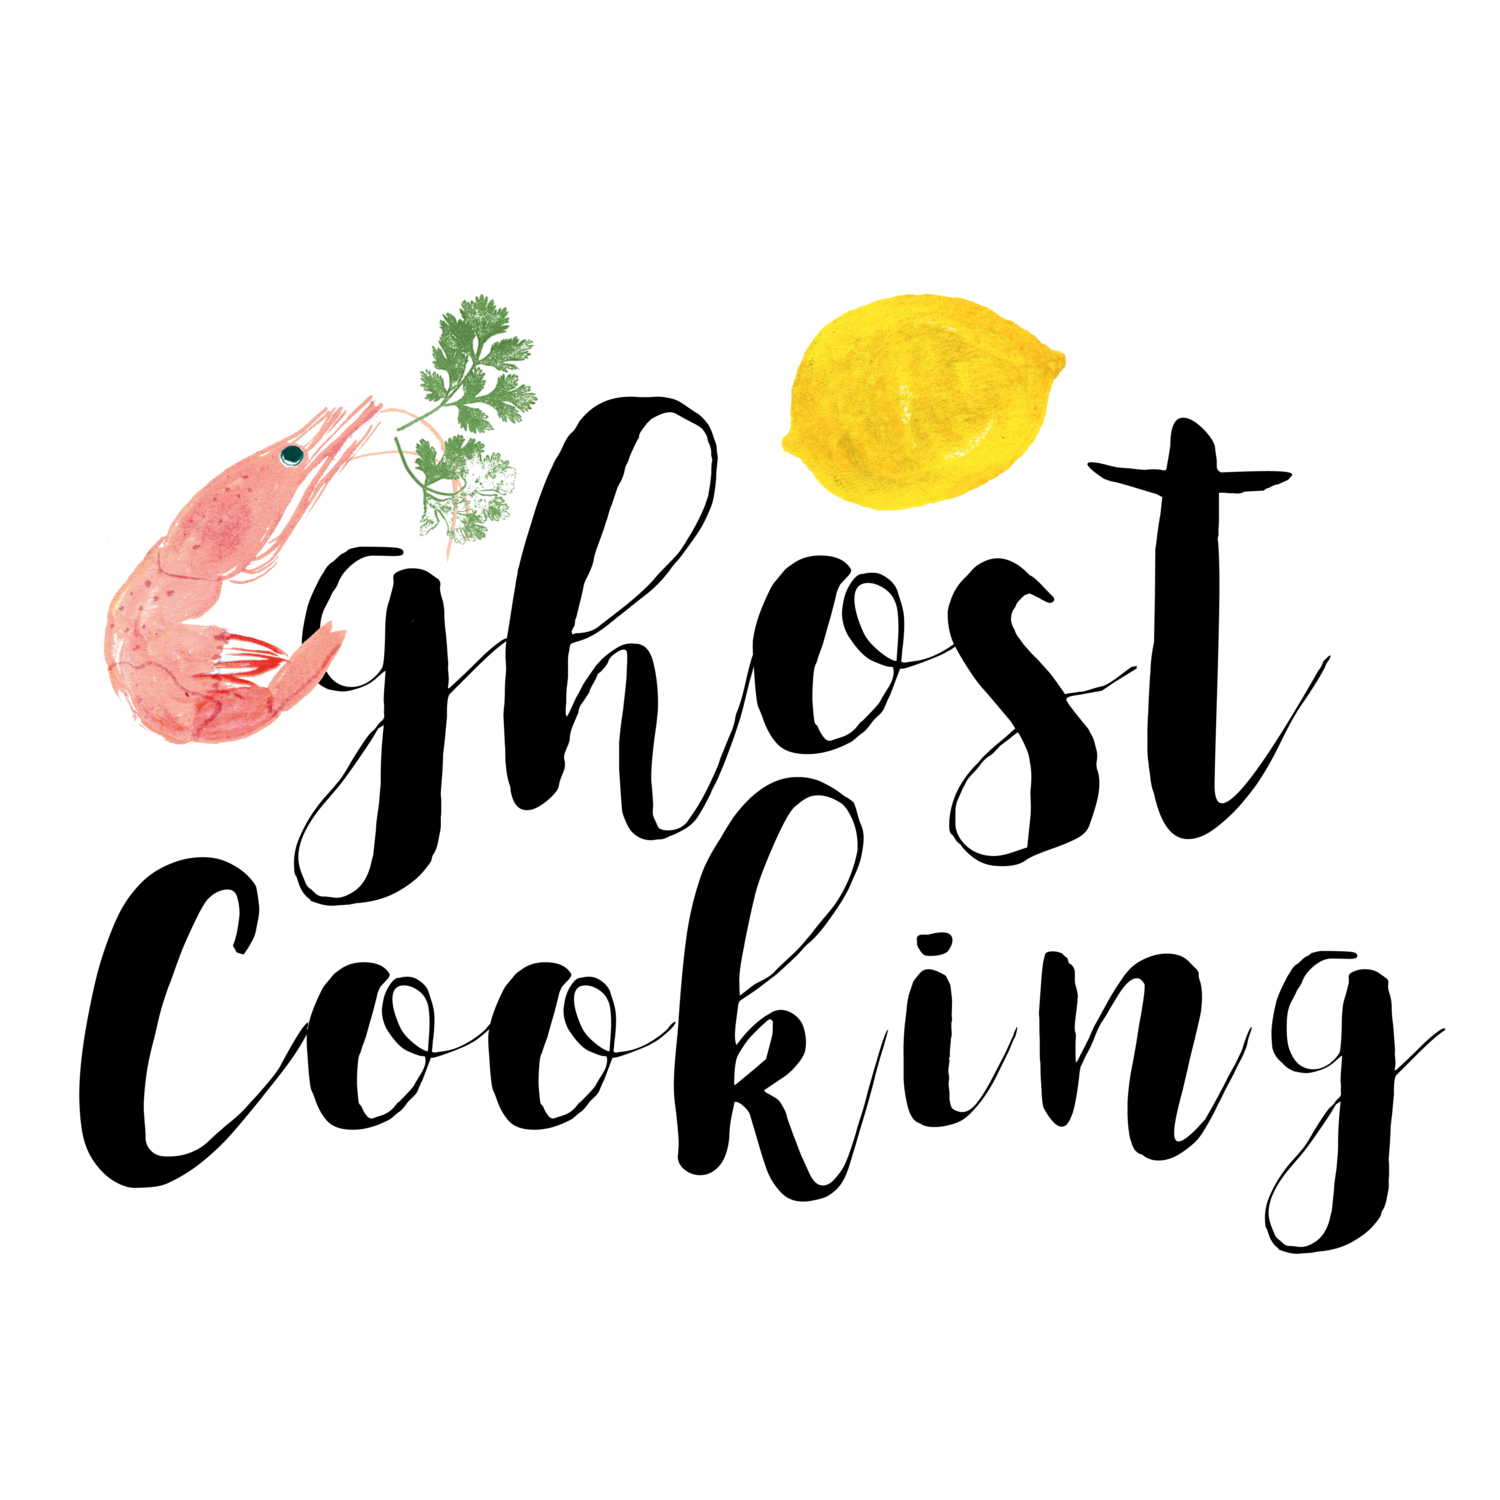 G*hostcooking